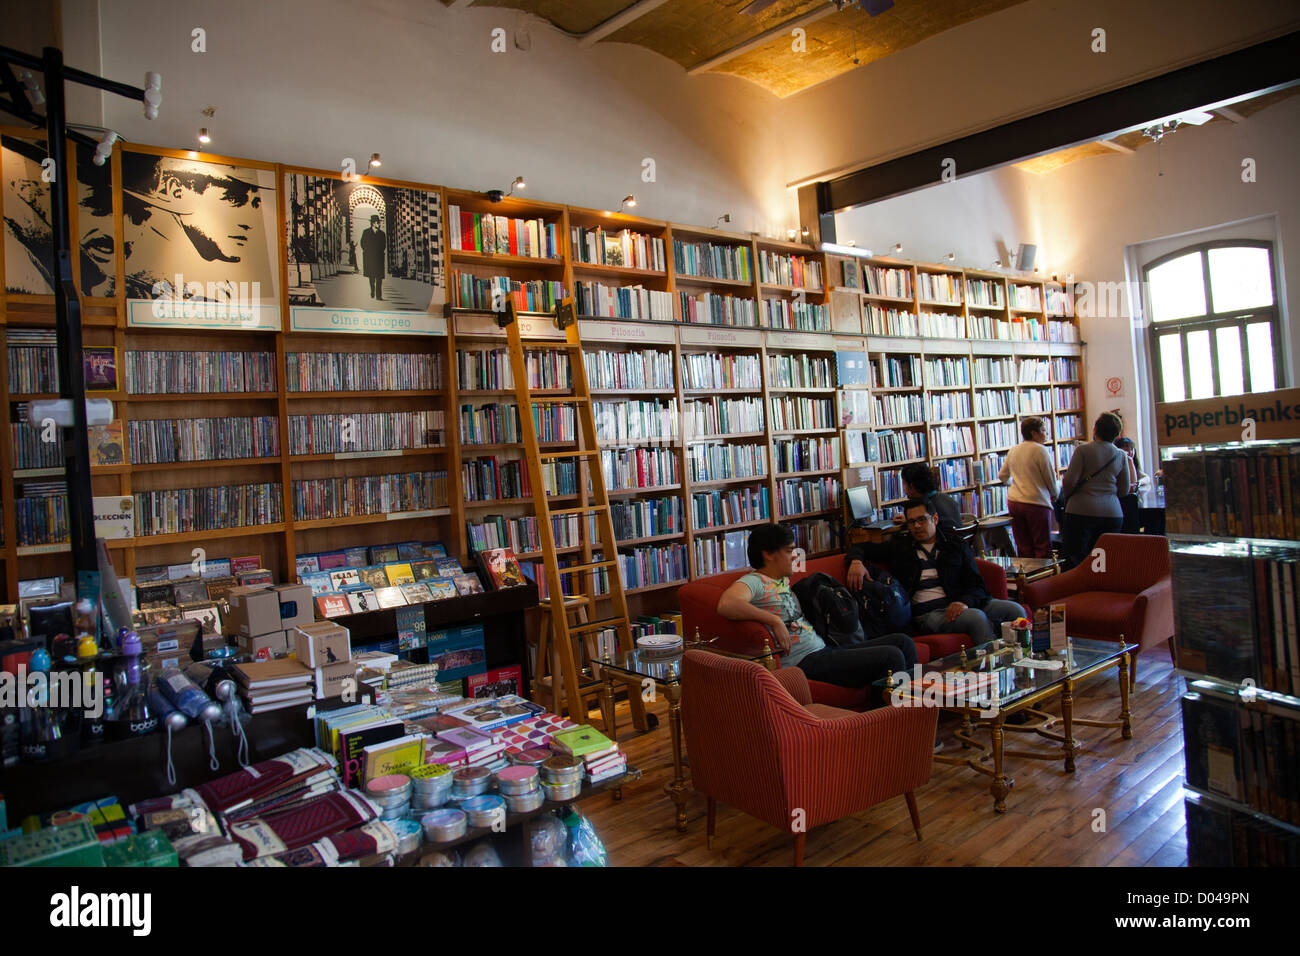 cafebreria is a mixed use bookshop music store cafe and restaurant stock photo 51726605 alamy. Black Bedroom Furniture Sets. Home Design Ideas